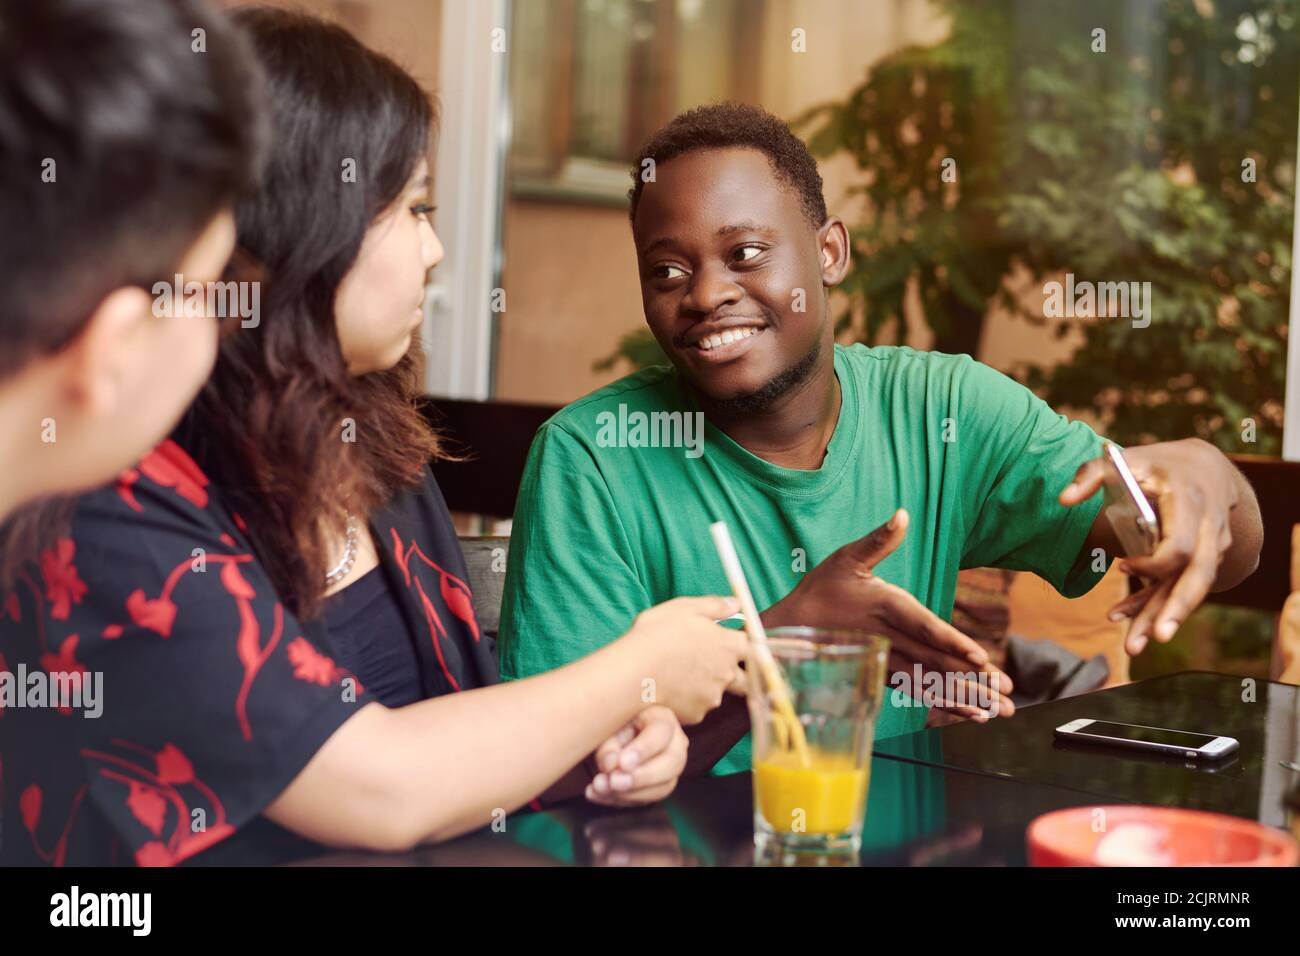 Multiracial group of friends having a coffee together. A young black man explains something to his girlfriend surrounded by friends. Stock Photo